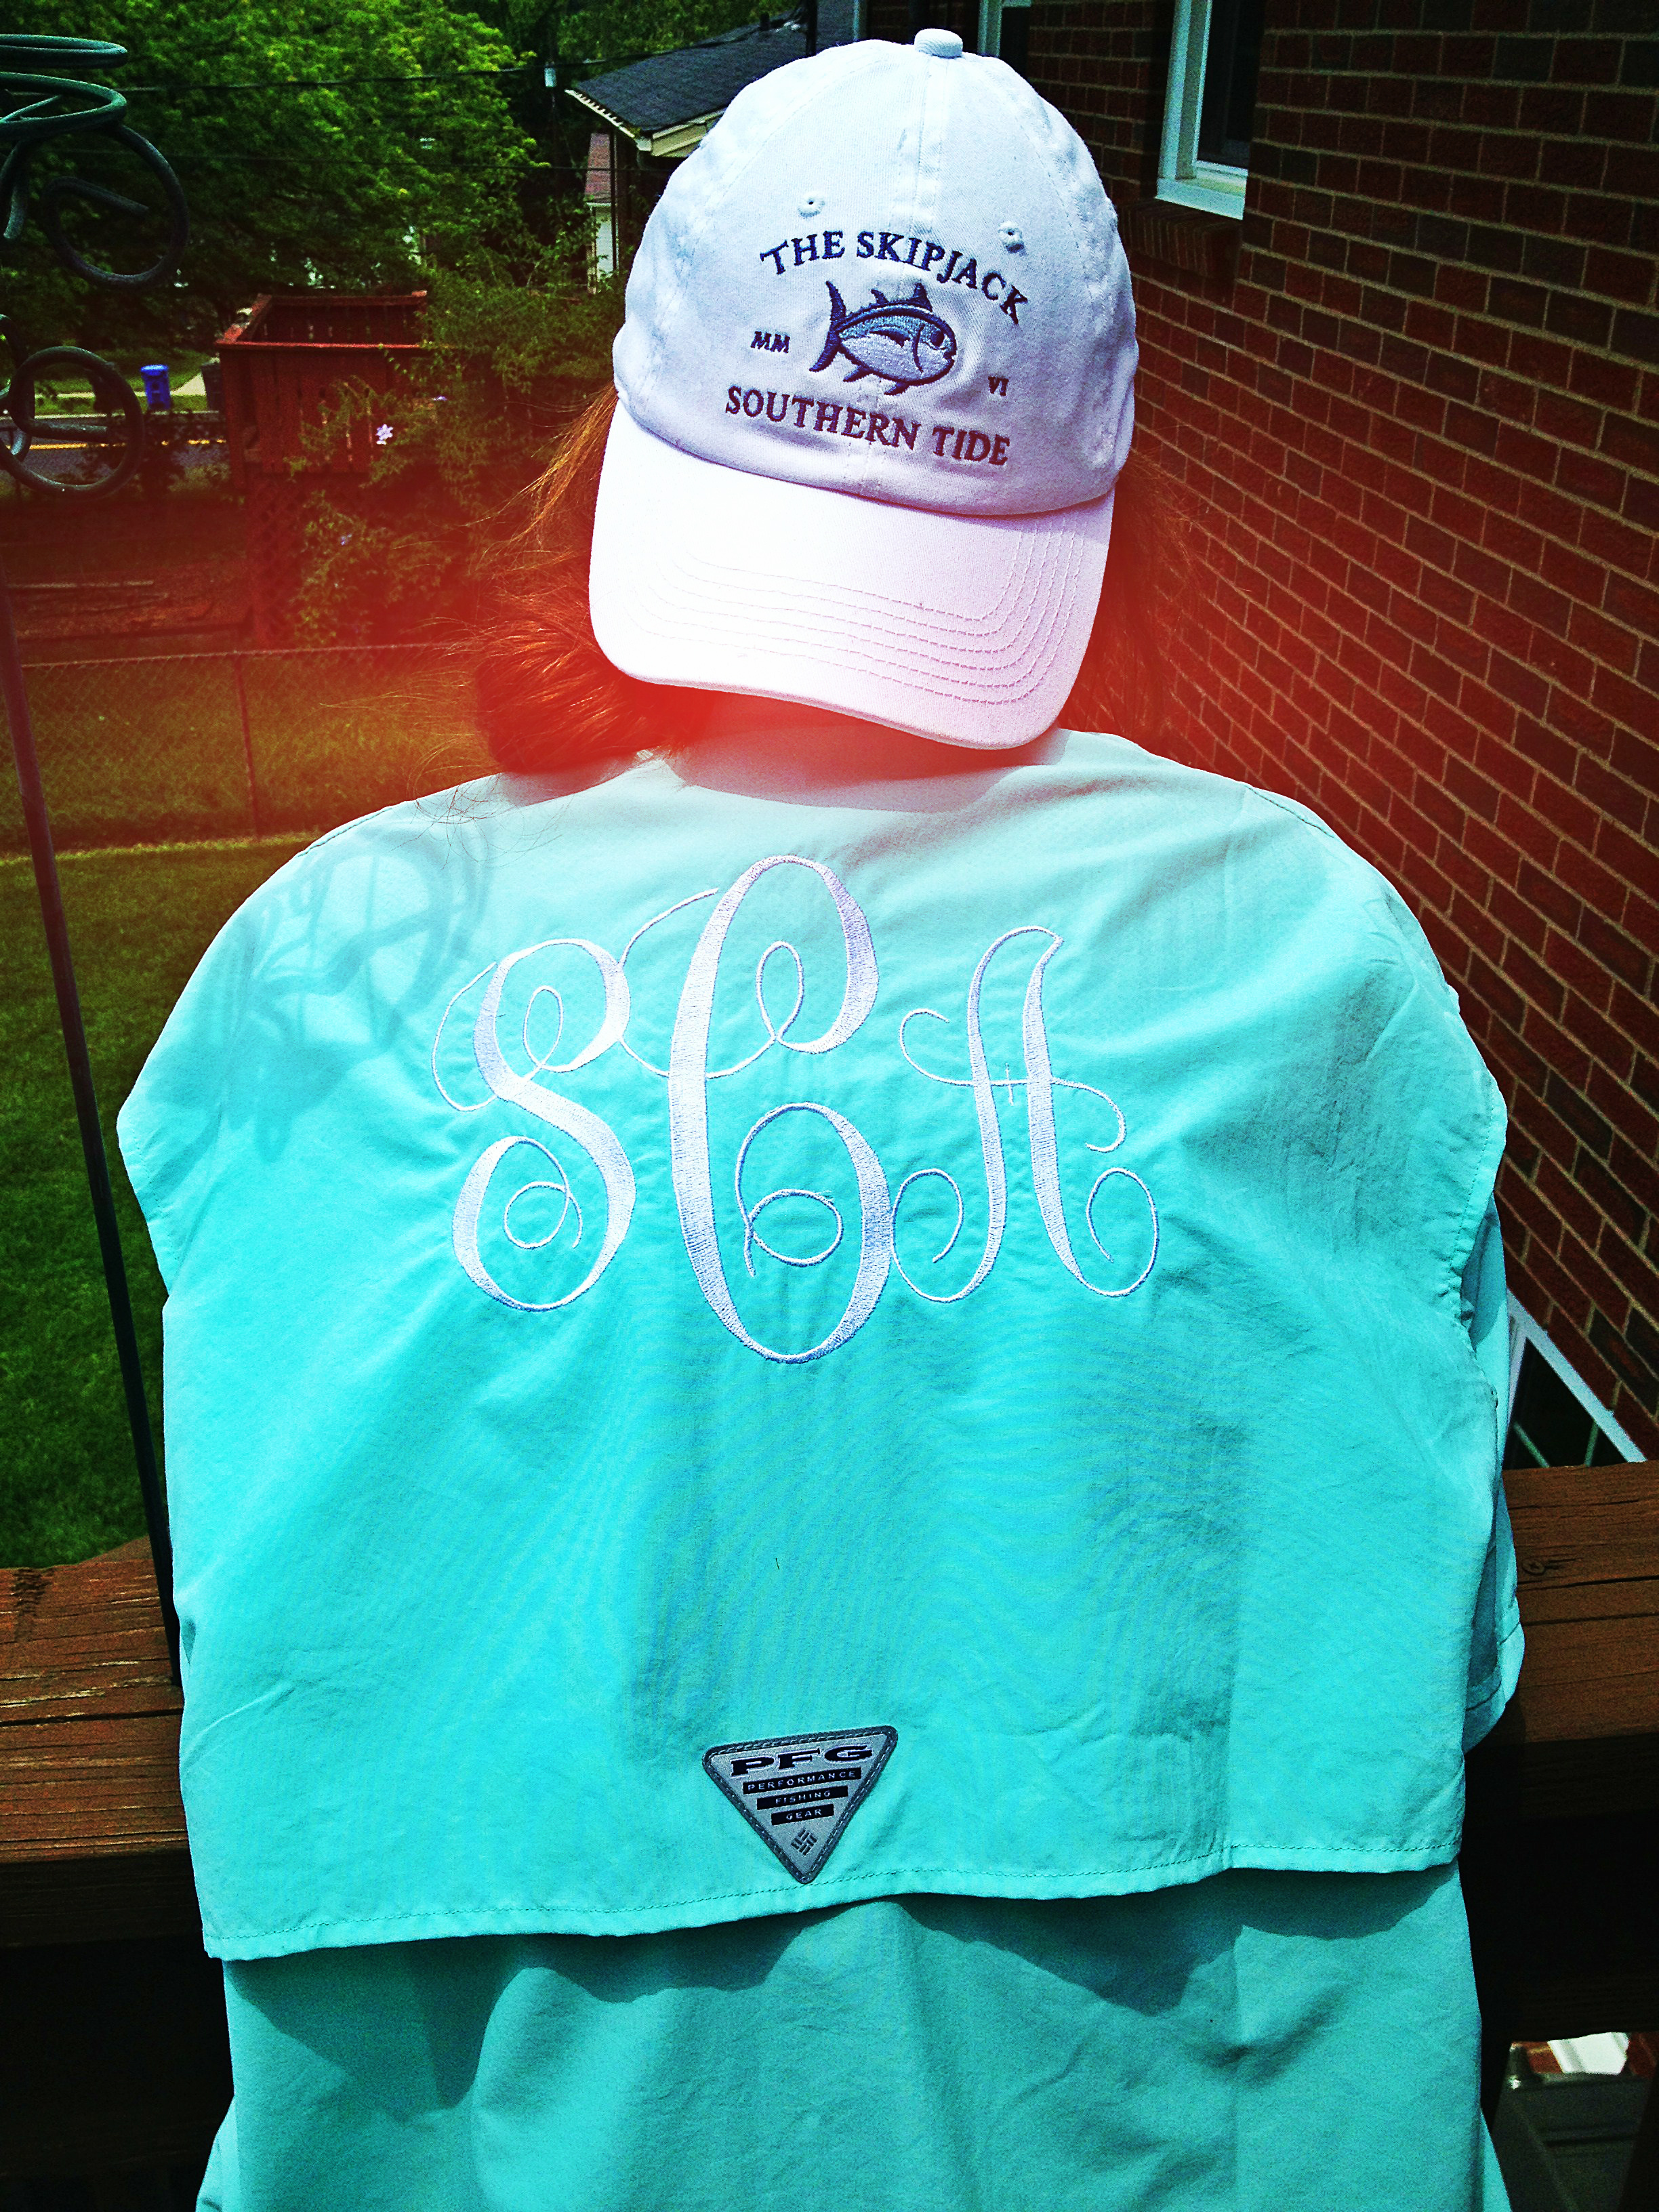 4bcce6045c ... Columbia PFG Fishing shirts as bathing suit cover-ups. What do you like  to monogram? IMG_6042 Monogram